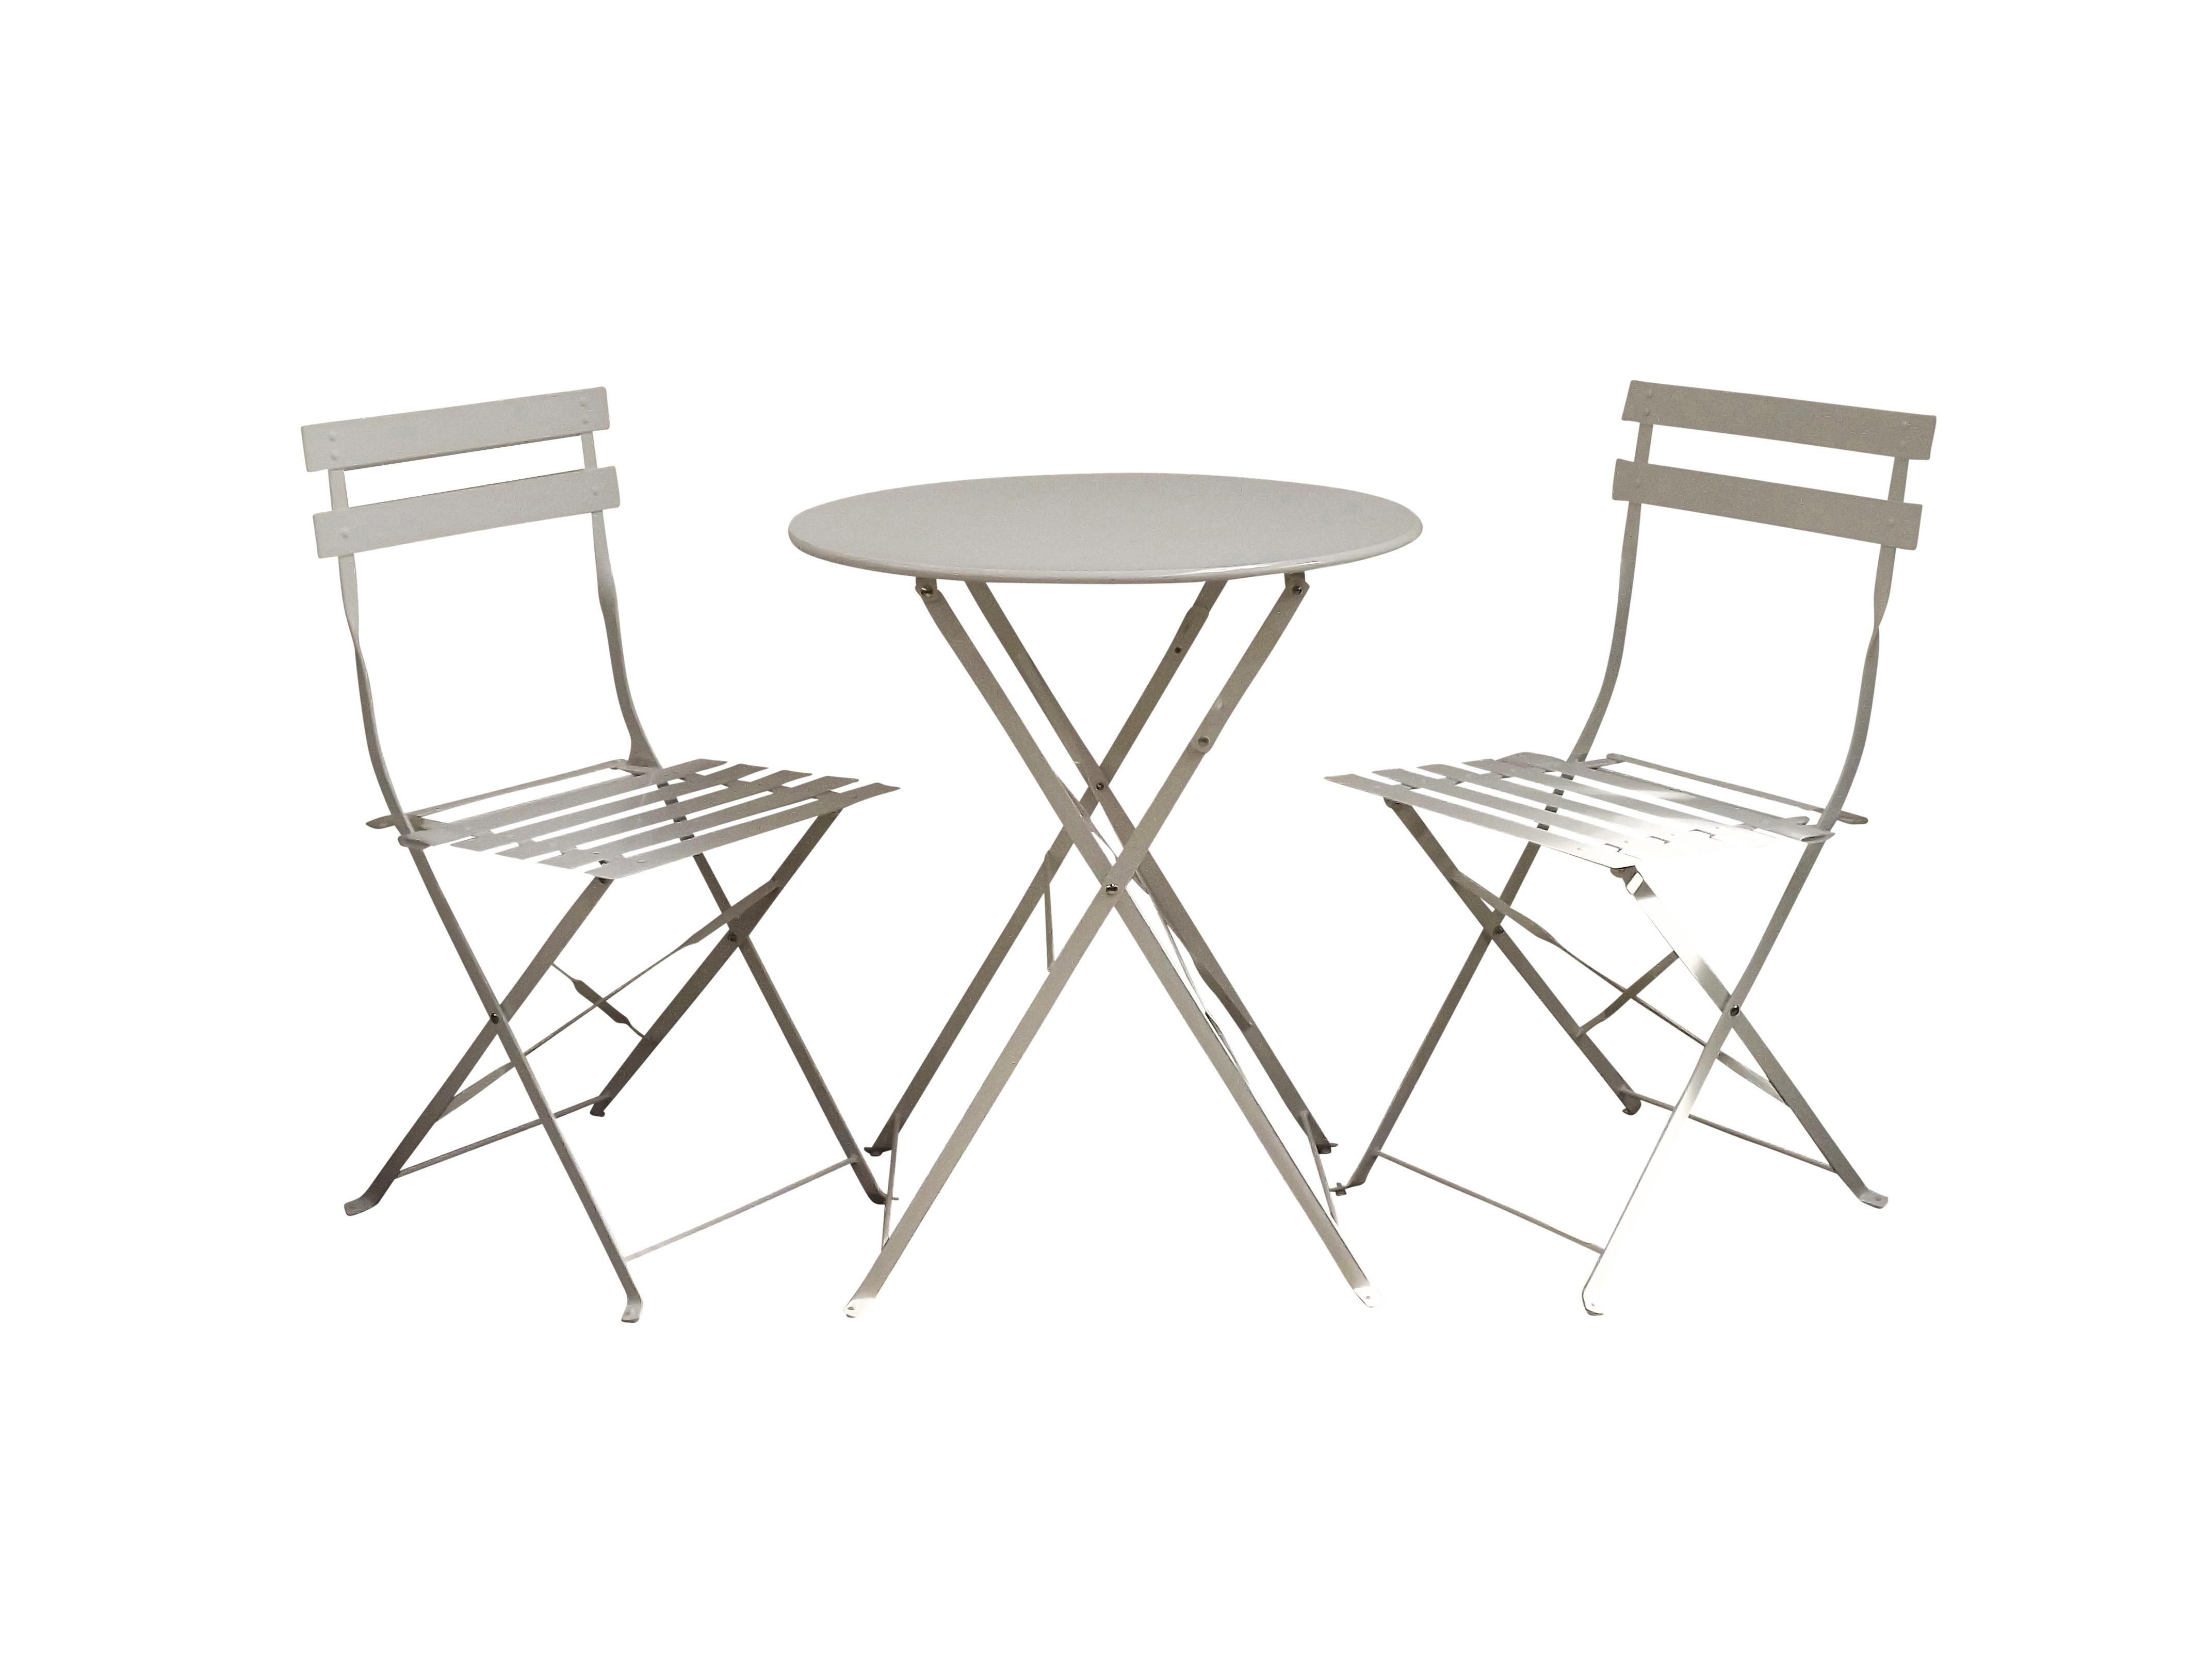 Dazzling bistro table and chairs for home furniture ideas with outdoor bistro table and chairs